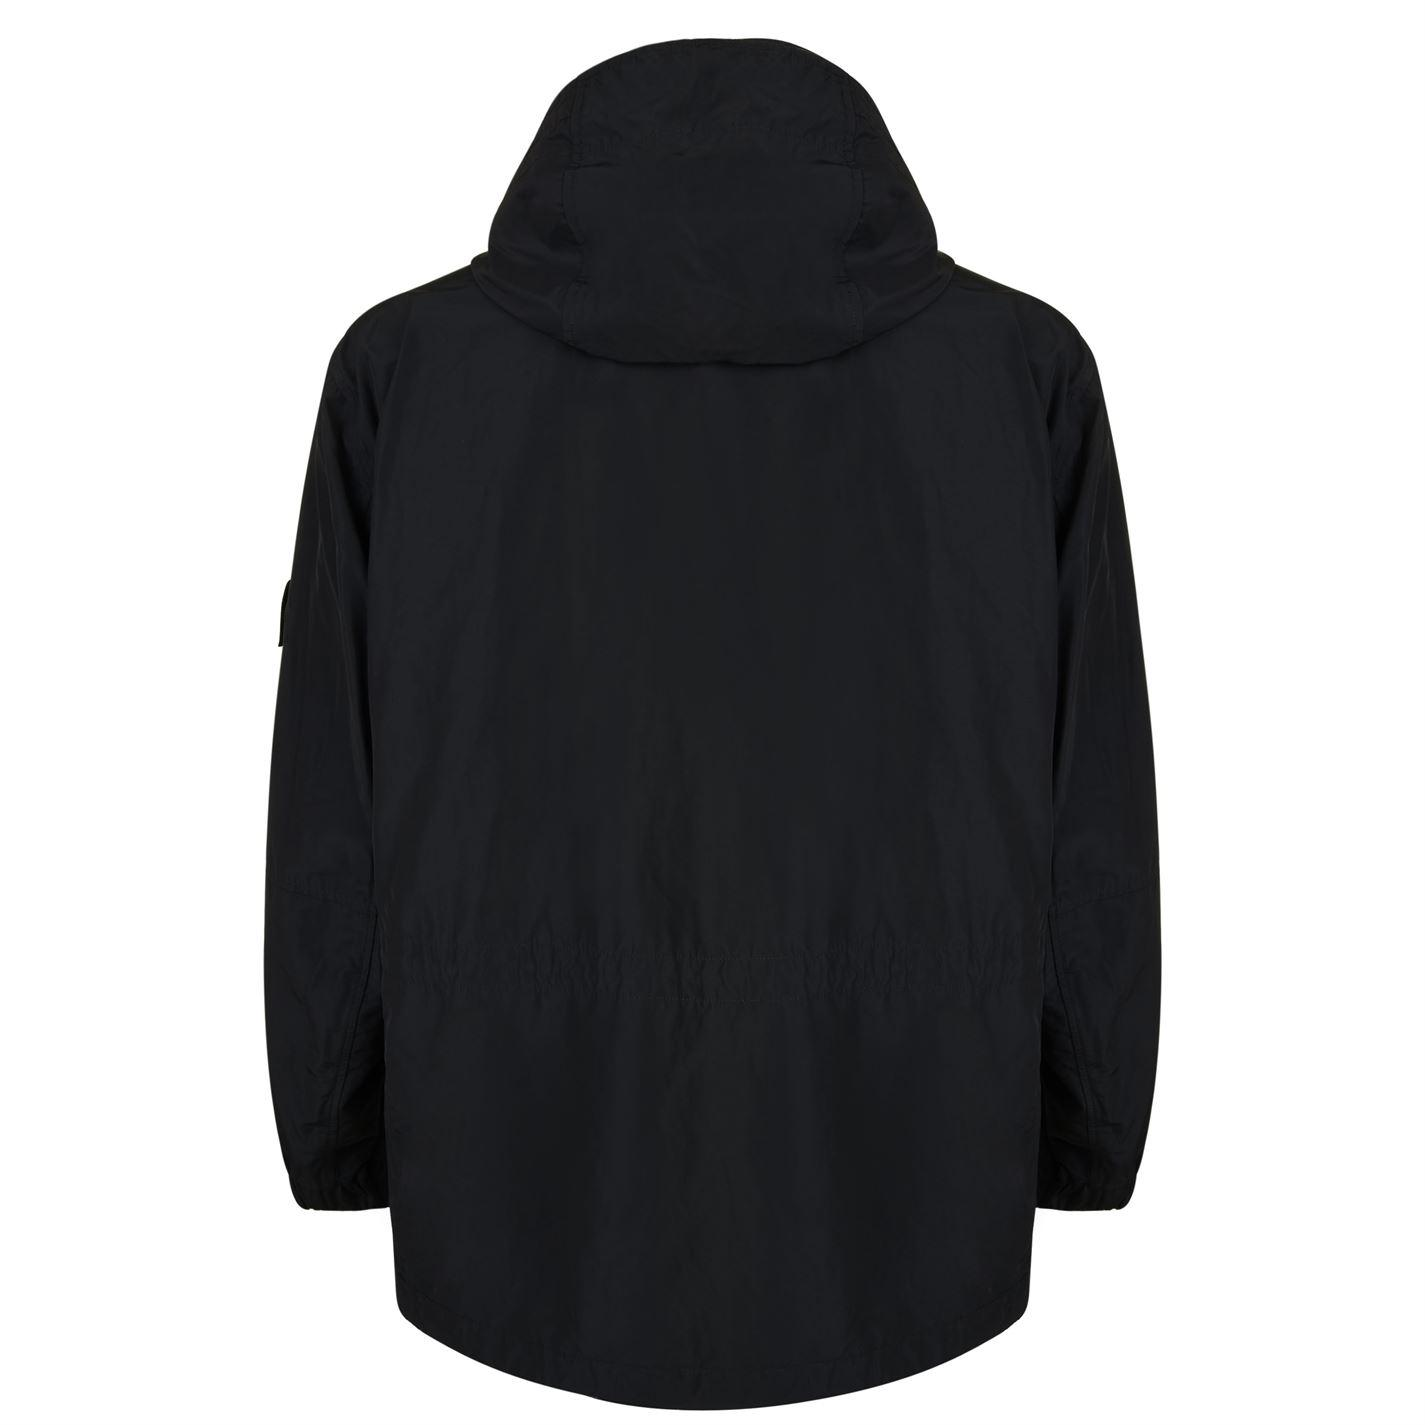 Stone Island Synthetic Micro Rep Jacket in Black for Men